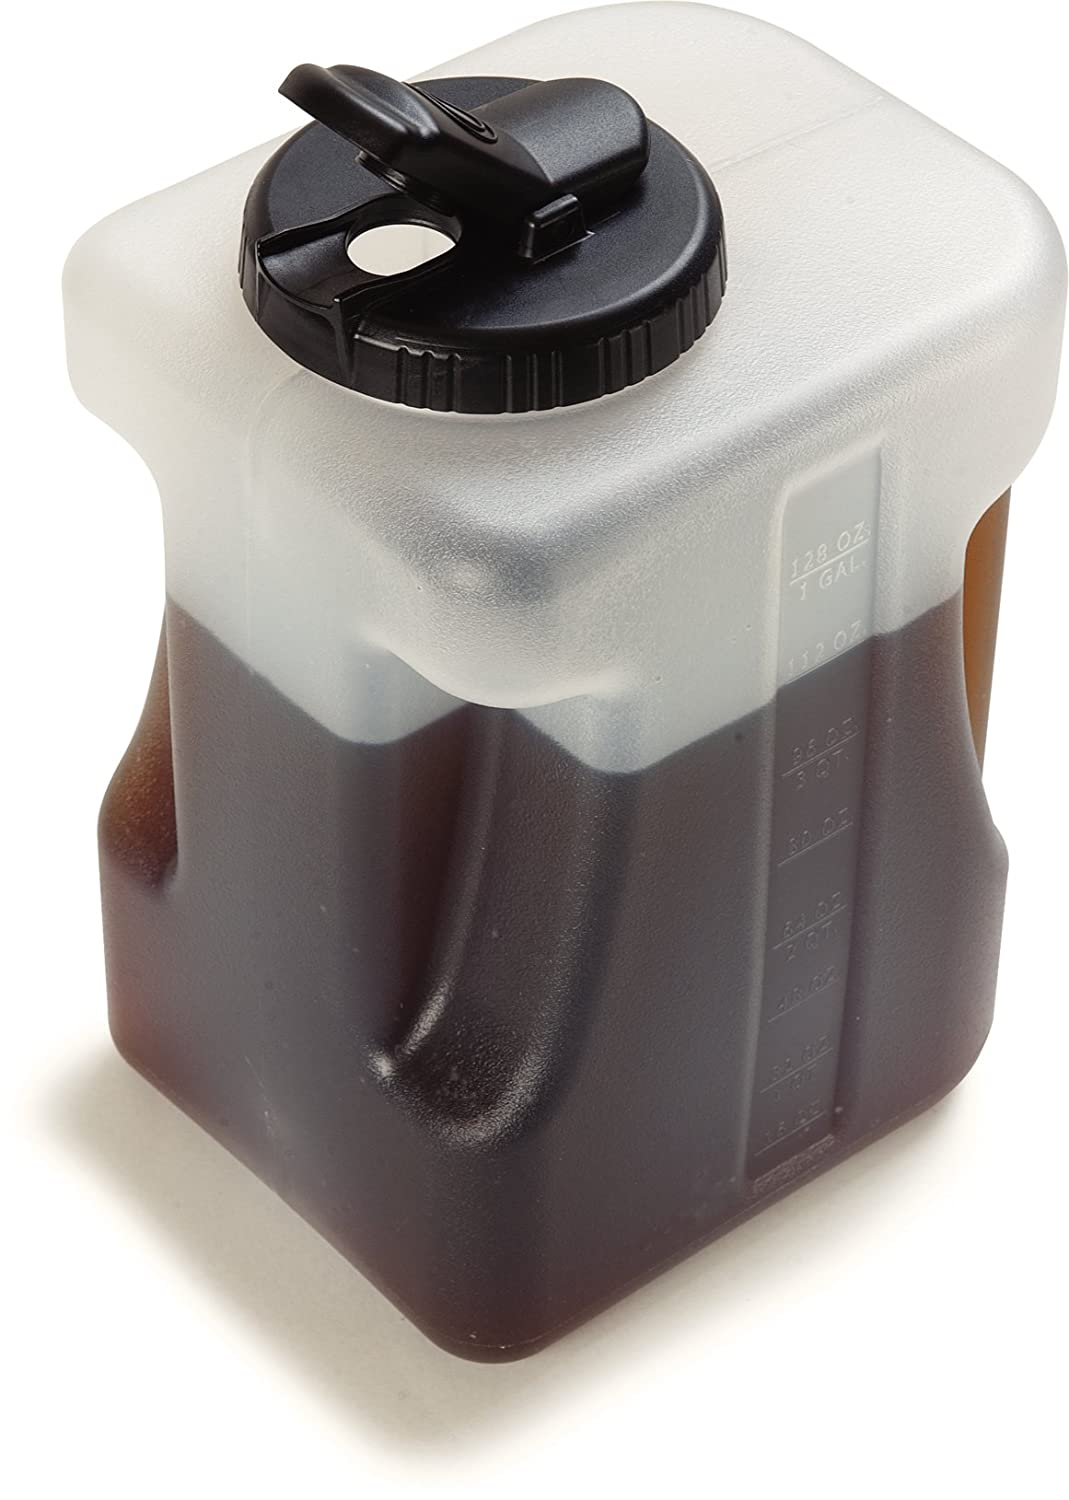 Carlisle 640000 Plastic Container / Jug with Lid, 1 Gallon (Pack of 2)